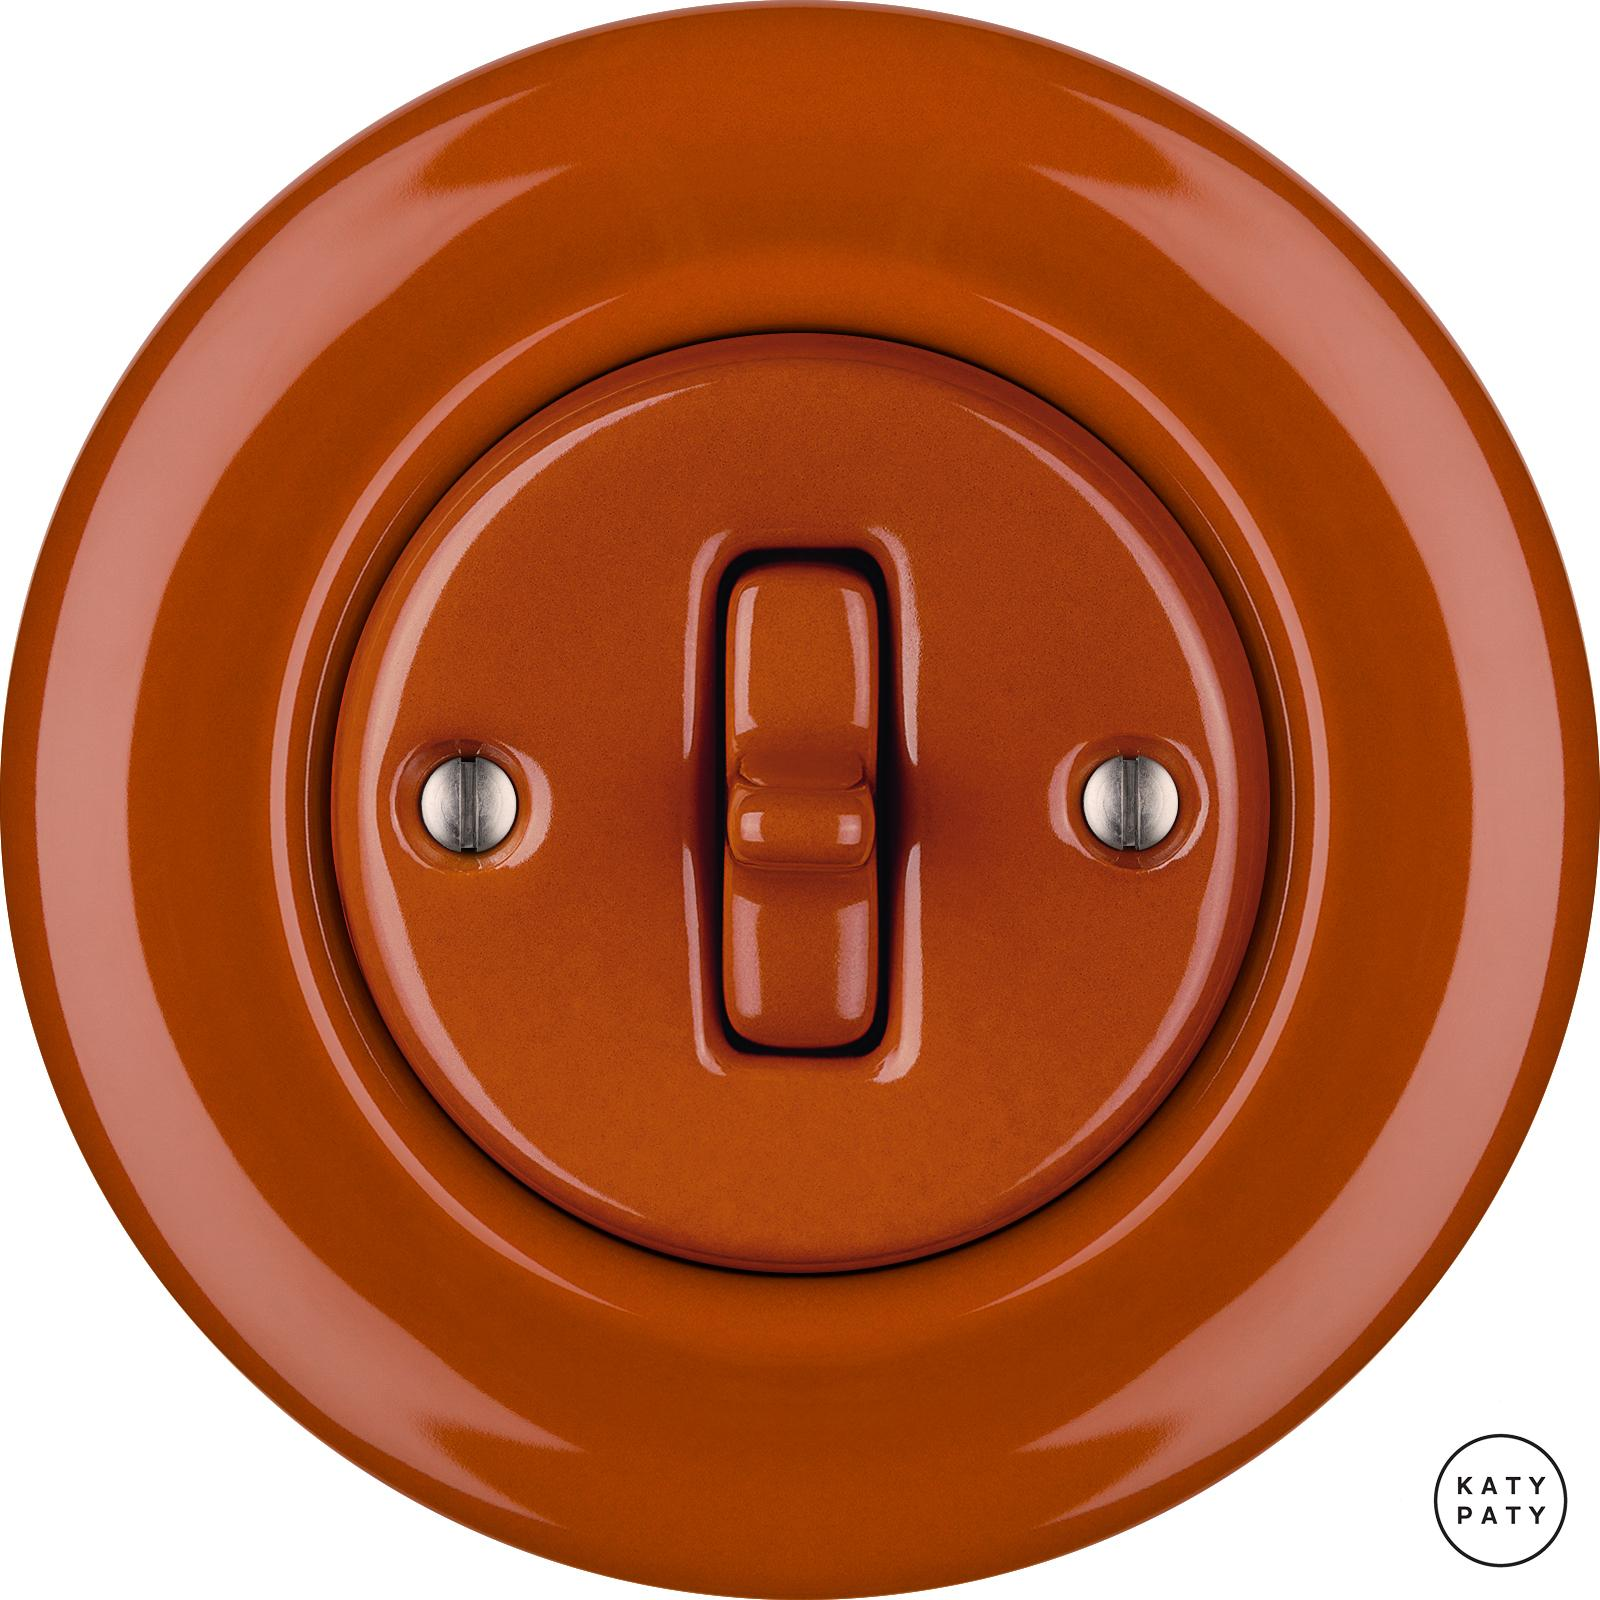 Porcelain Toggle switches - a single key ()  - AURANTIA | Katy Paty